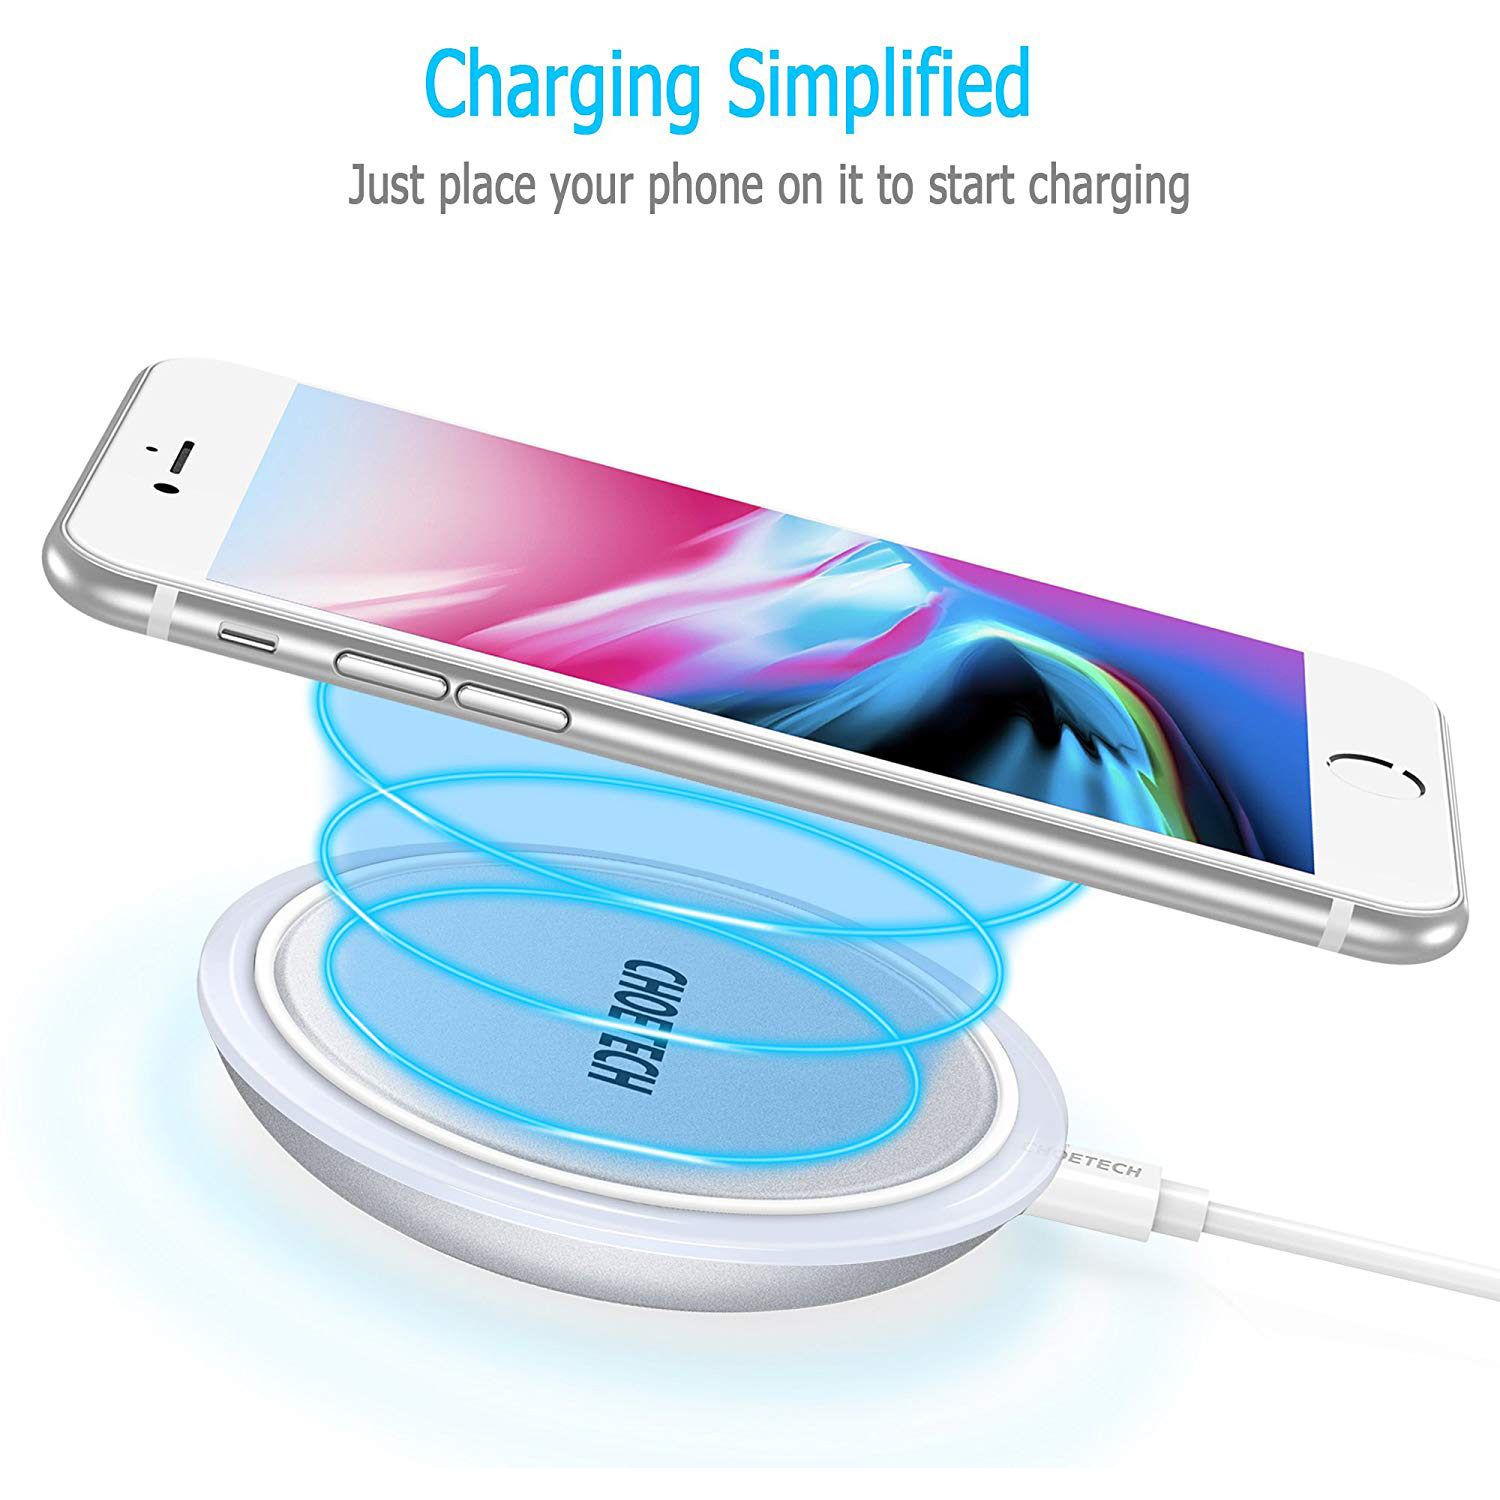 CHOETECH-Wireless-Cell-Phone-Charging-Pad-for-Qi-Enabled-Devices thumbnail 11